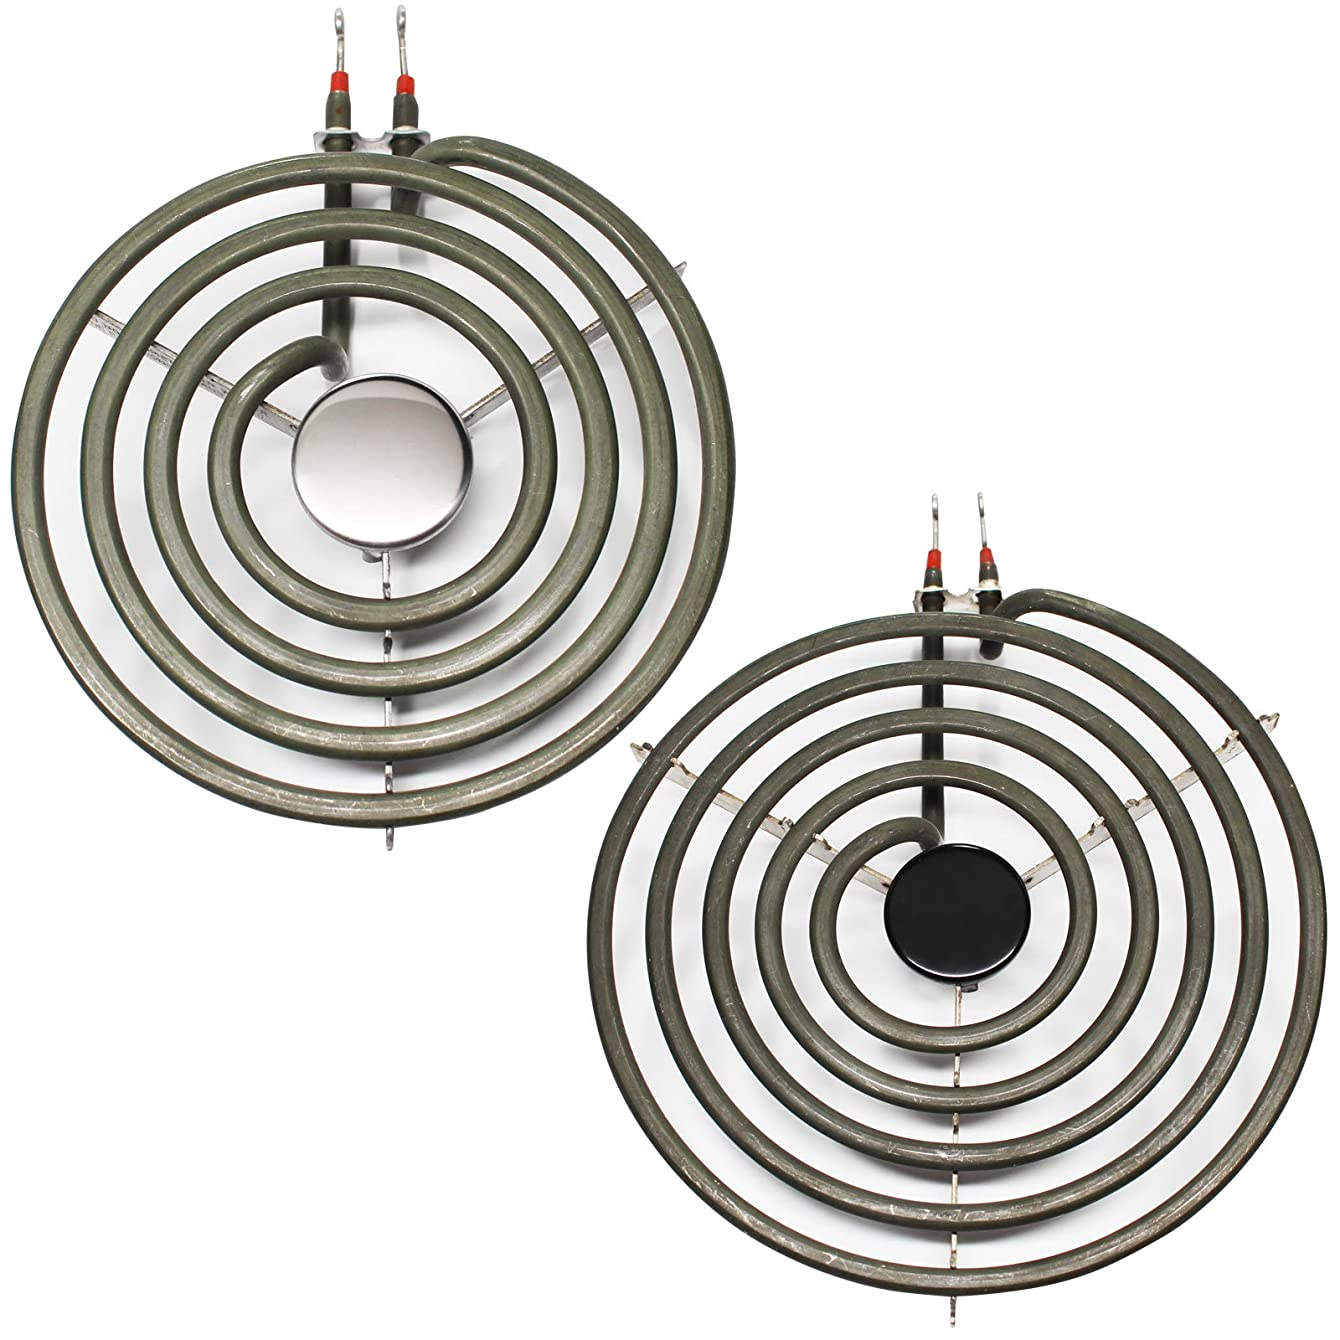 UpStart Components Replacement Frigidaire GEF322BBDB 8 inch 5 Turns & 6 inch 4 Turns Surface Burner Elements - Compatible Frigidaire 316442301 & 316439801 Heating Element for Range, Stove & Cooktop